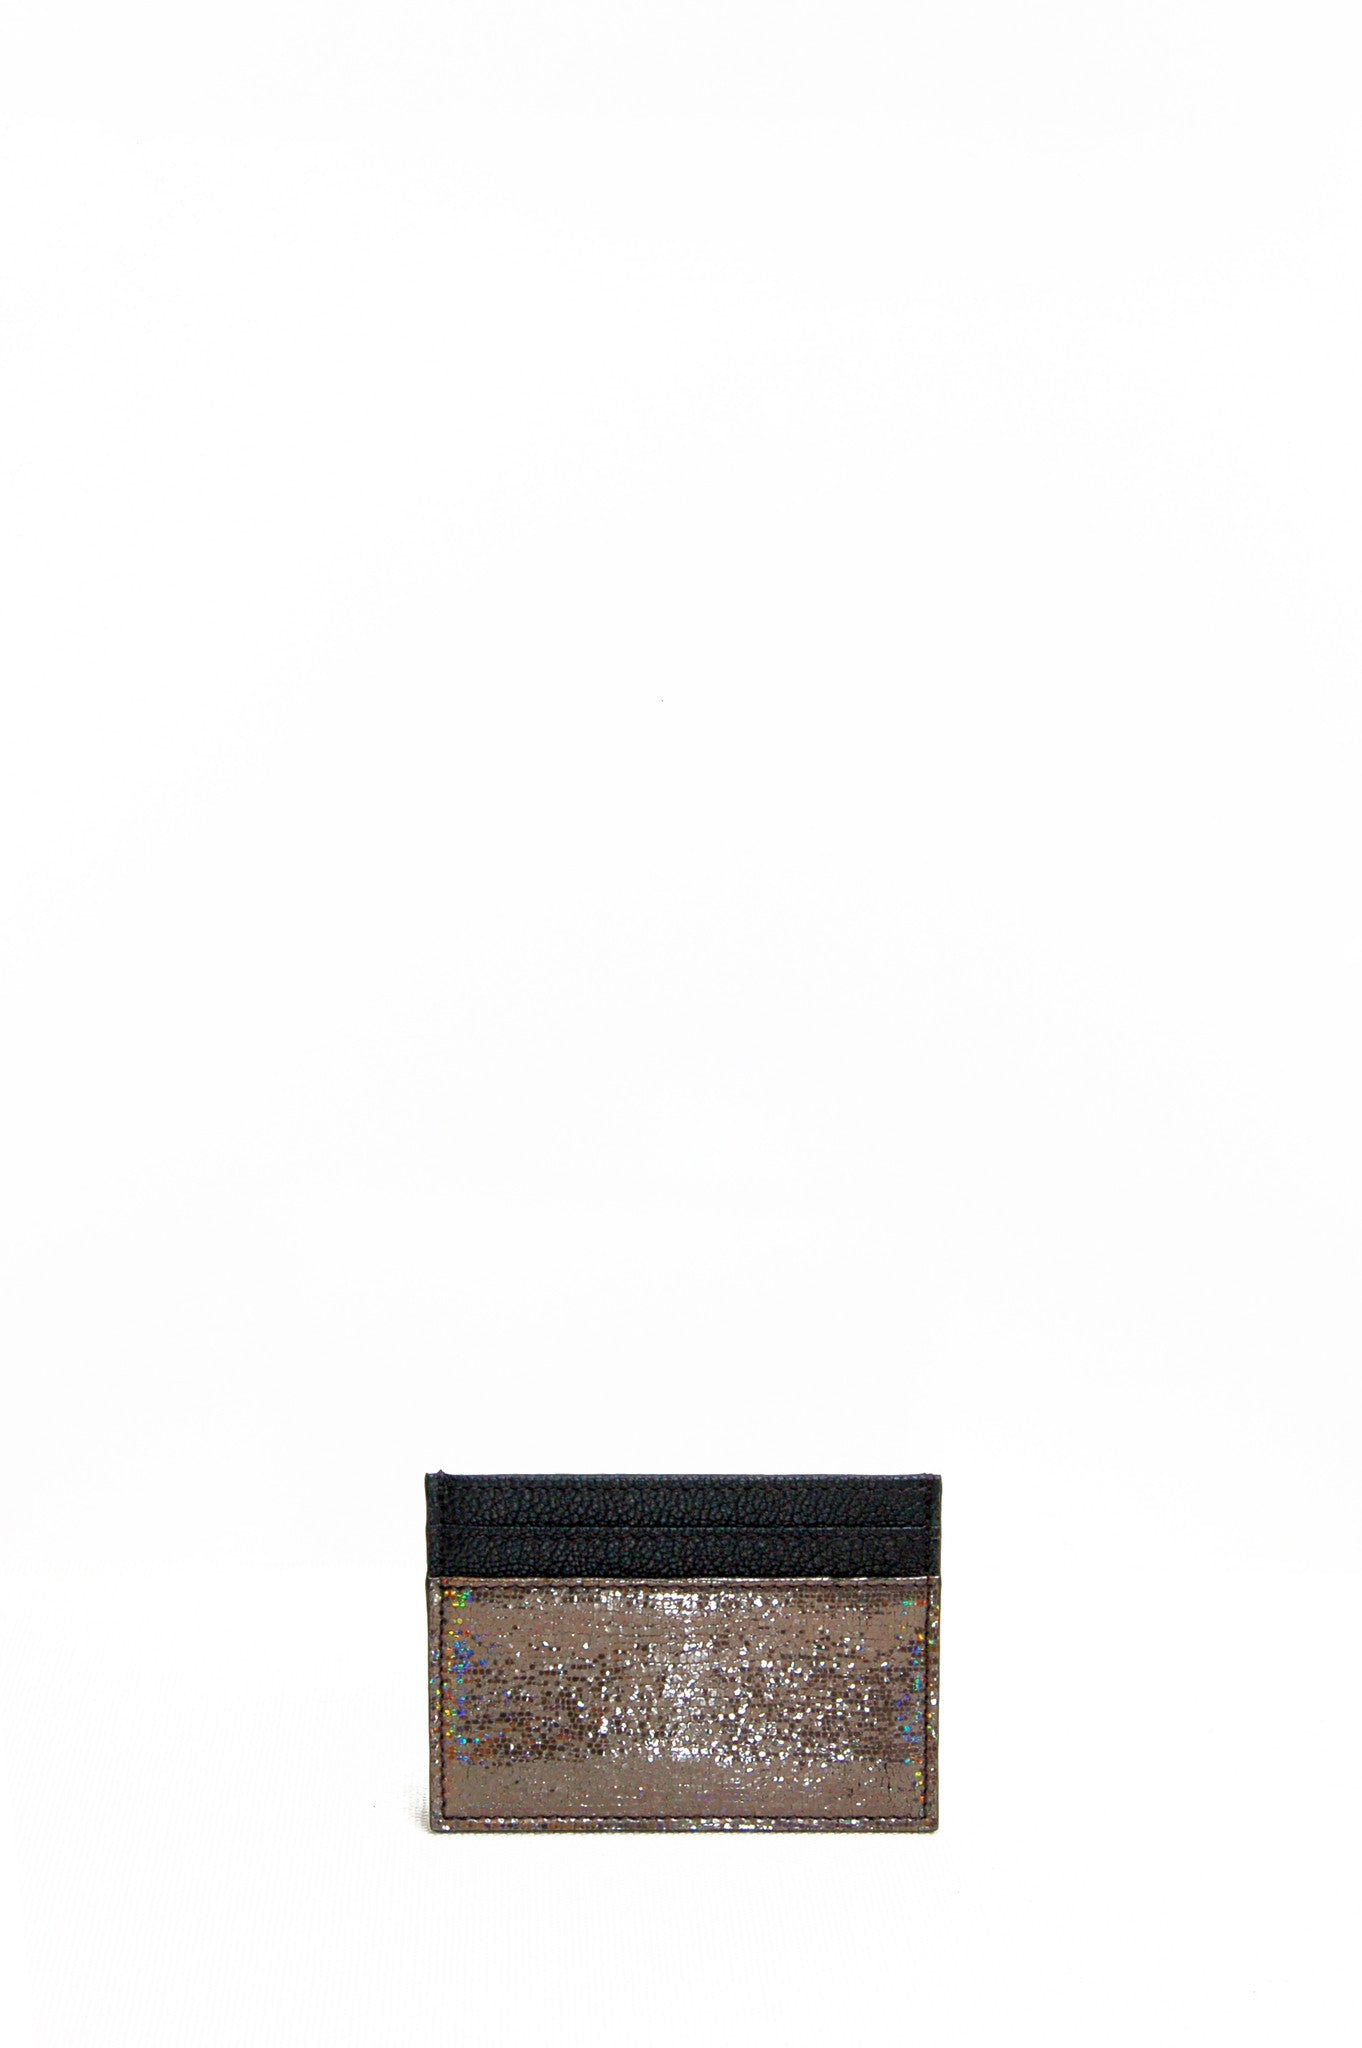 Wendee Ou: Gia cardholder black & bronze | Accessories > Wallets,Accessories -  Hiphunters Shop